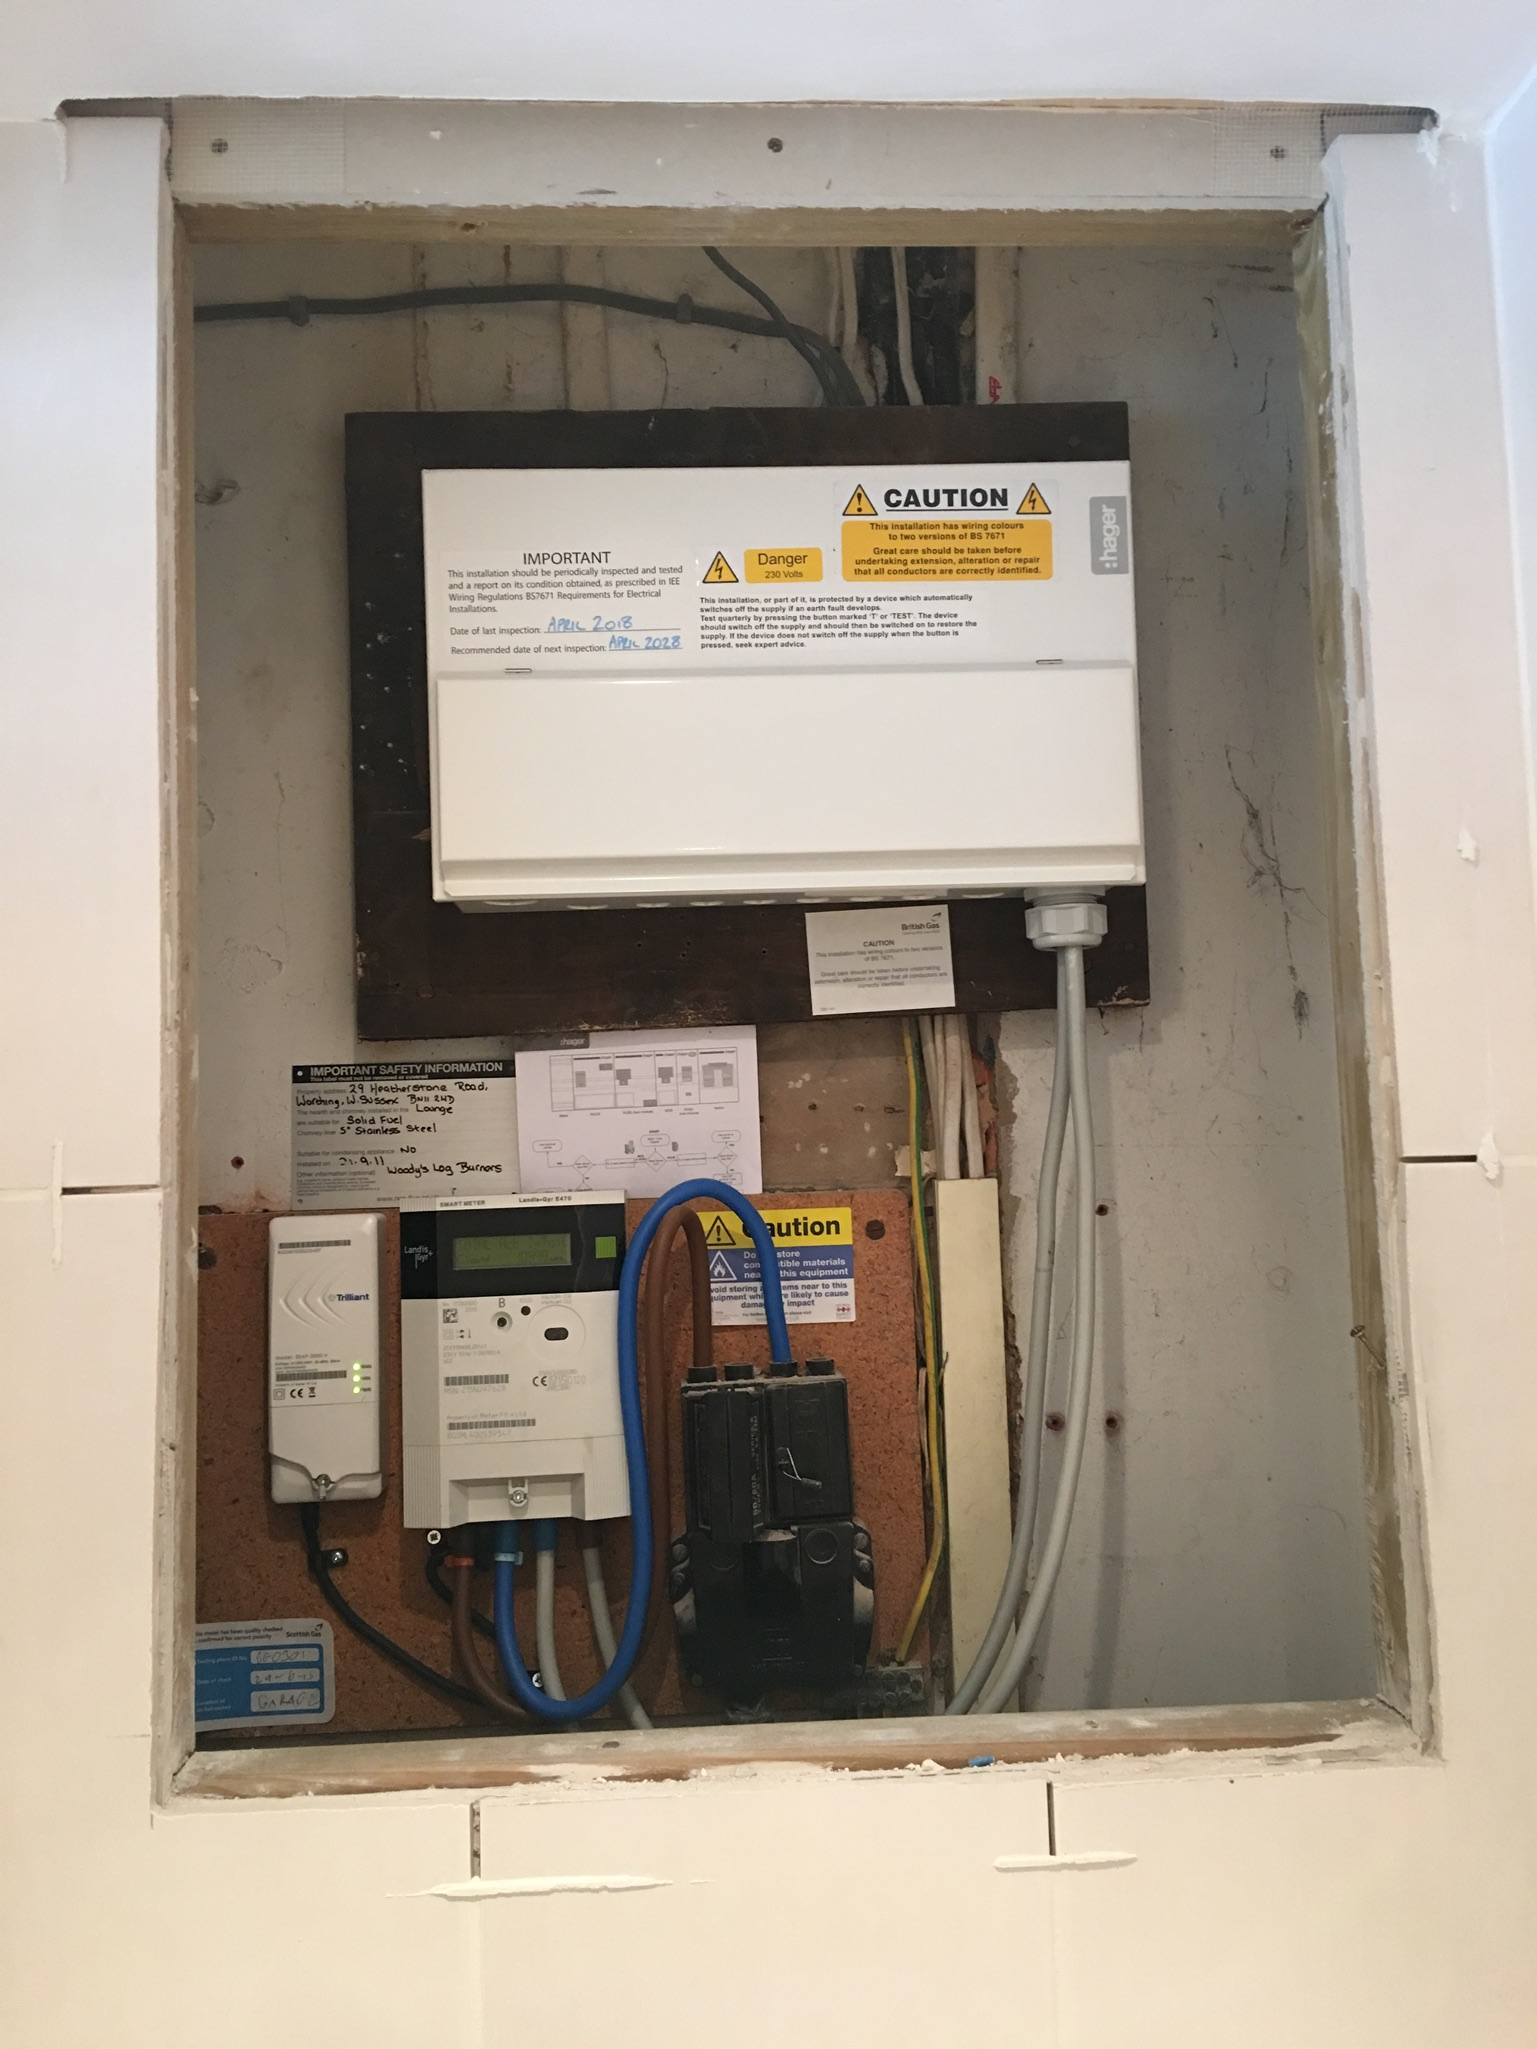 replace fuse box wiring diagram rh c9 cdu grossefehn de replace fuse box with consumer unit replace fuse box car